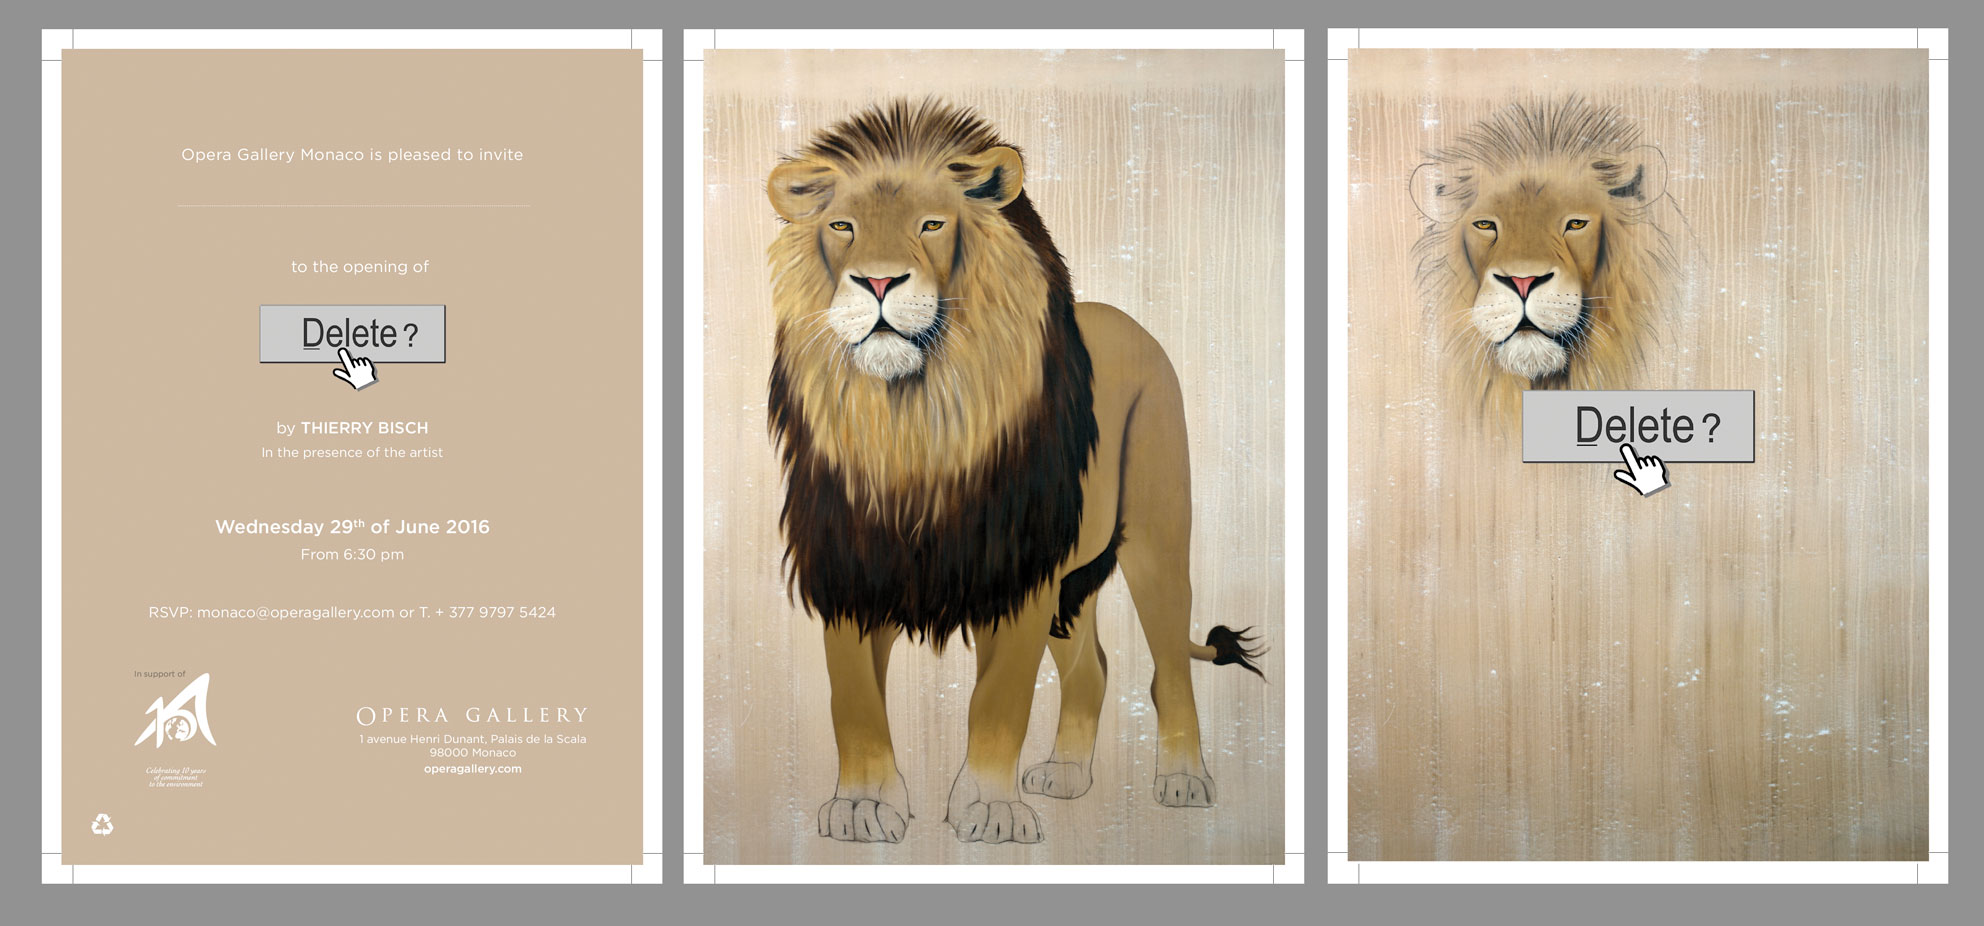 Invitation Monaco 2016 asiatic-lion-indian-persian-panthera-leo-persica-threatened-endangered-extinction Thierry Bisch Contemporary painter animals painting art  nature biodiversity conservation